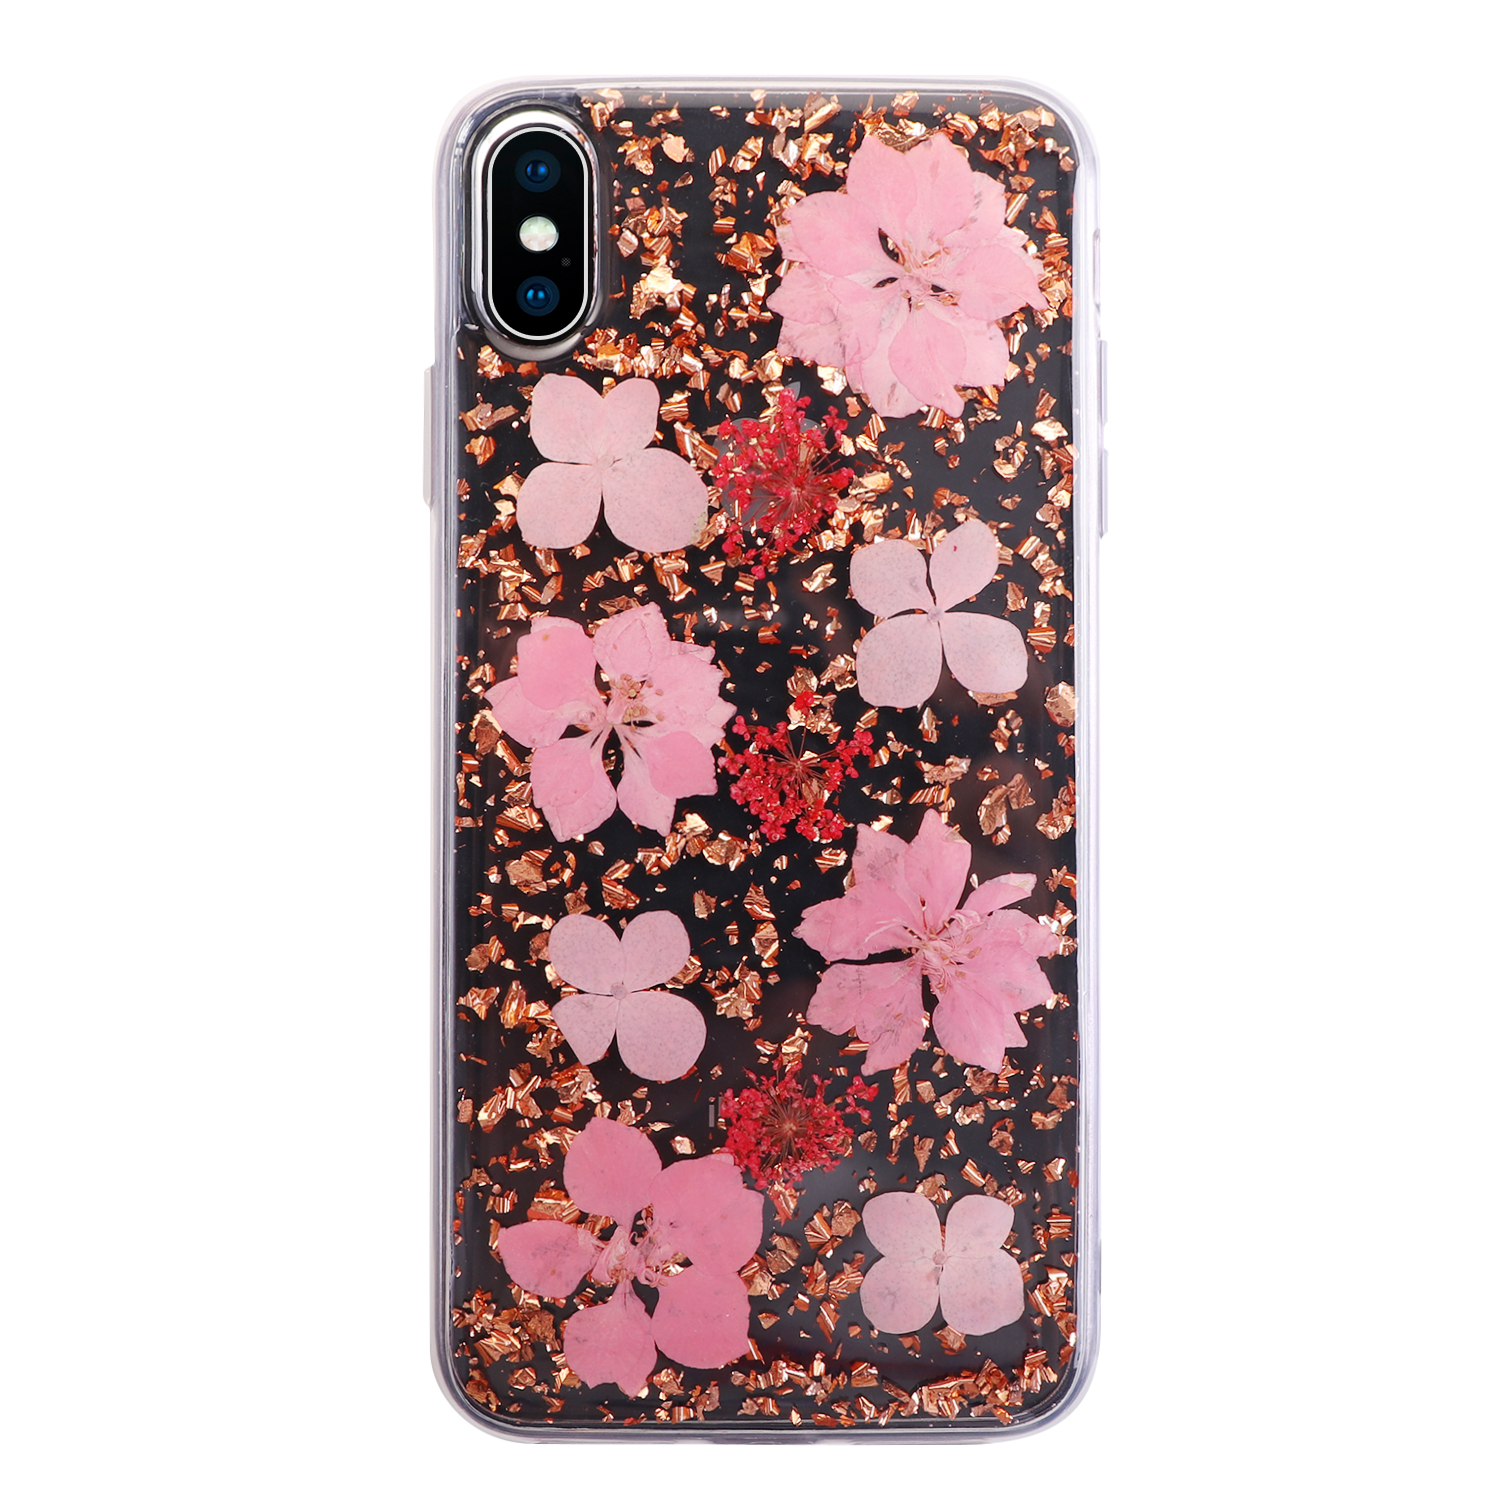 2019 new arrivals clear transparency real floral cell phone case for iPhone models